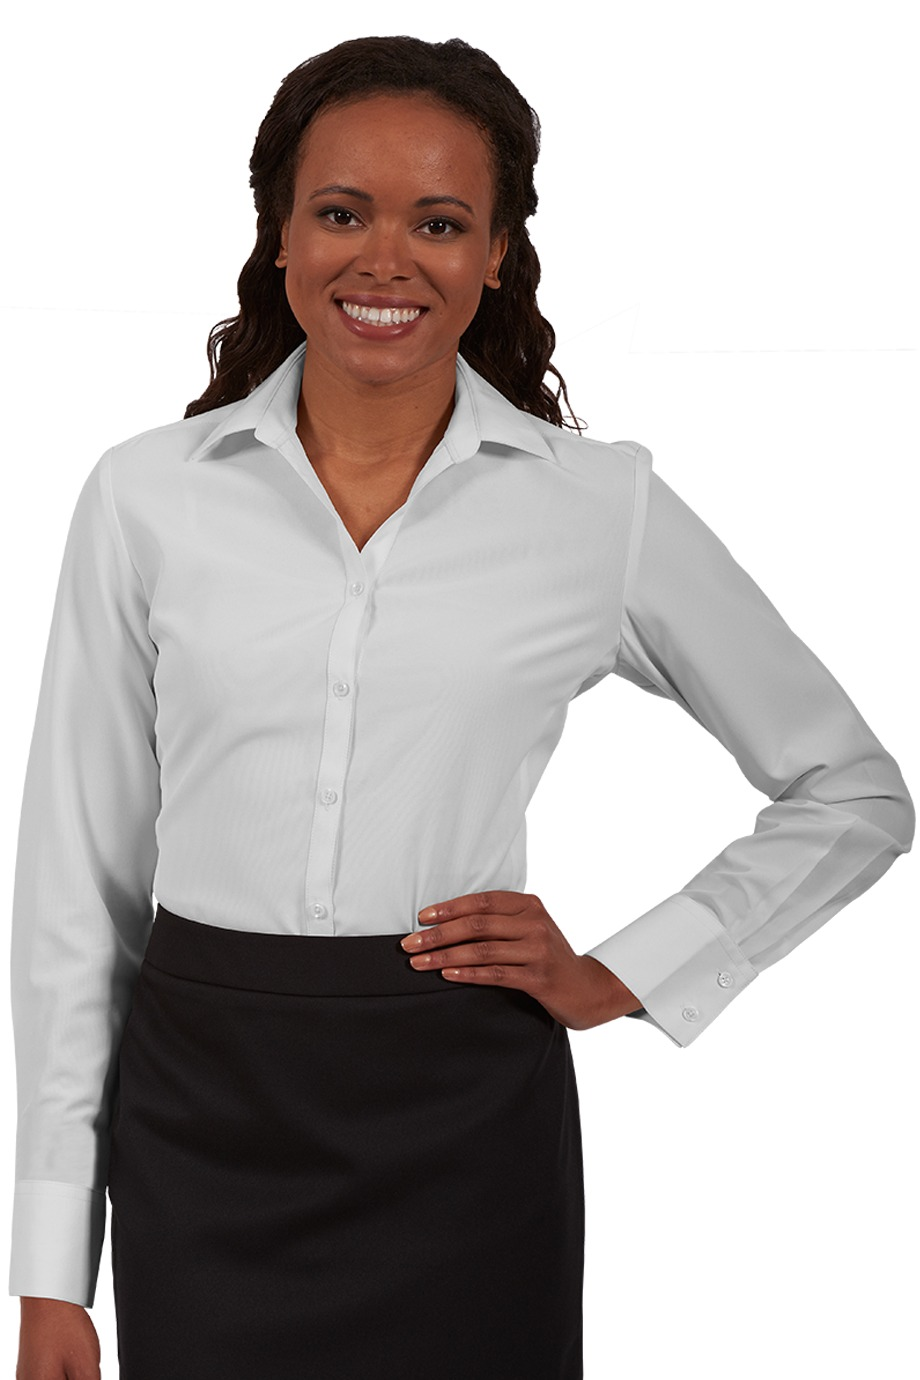 Womens French Cuff Shirts From 9 40